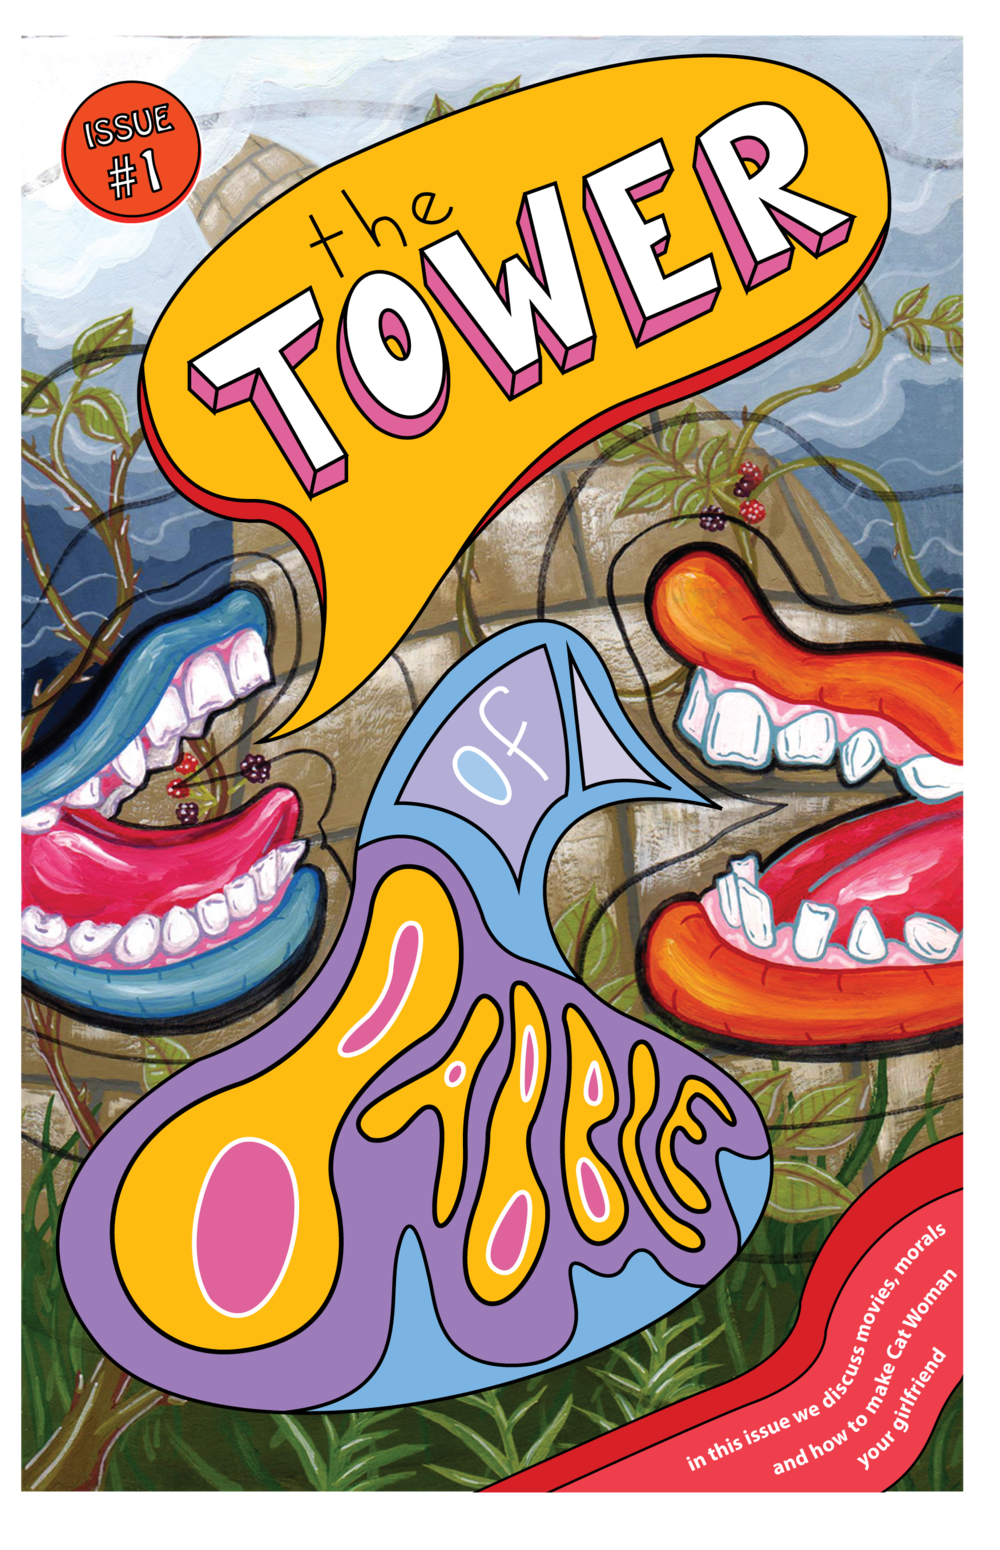 Tower of Babble Issue #1